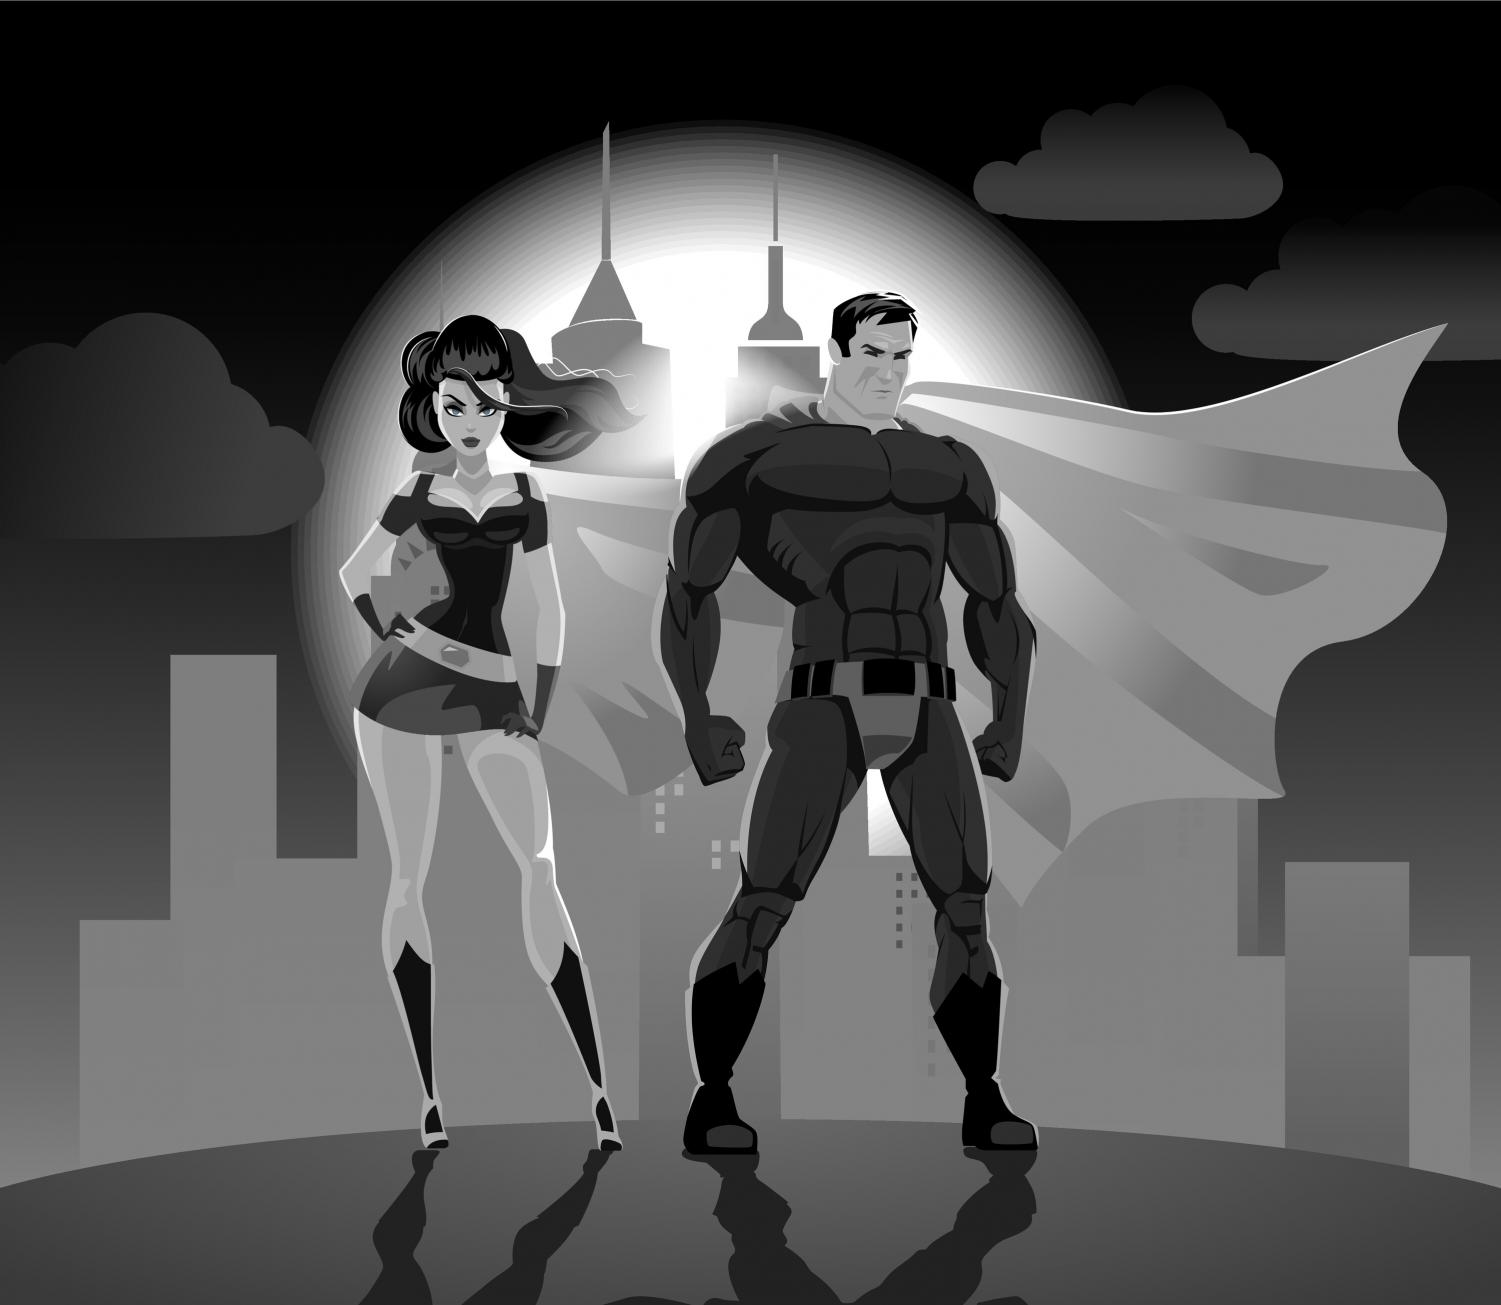 Superhero stories have enthralled people for ages. They are loved for their powerful heroes and heroines and their fascinating plots. But what happens when the traditional stereotypes for our superpowered role models are replaced with characters that represent current issues? Is that what audiences really want?			       Image courtesy of CamStockPhoto.com